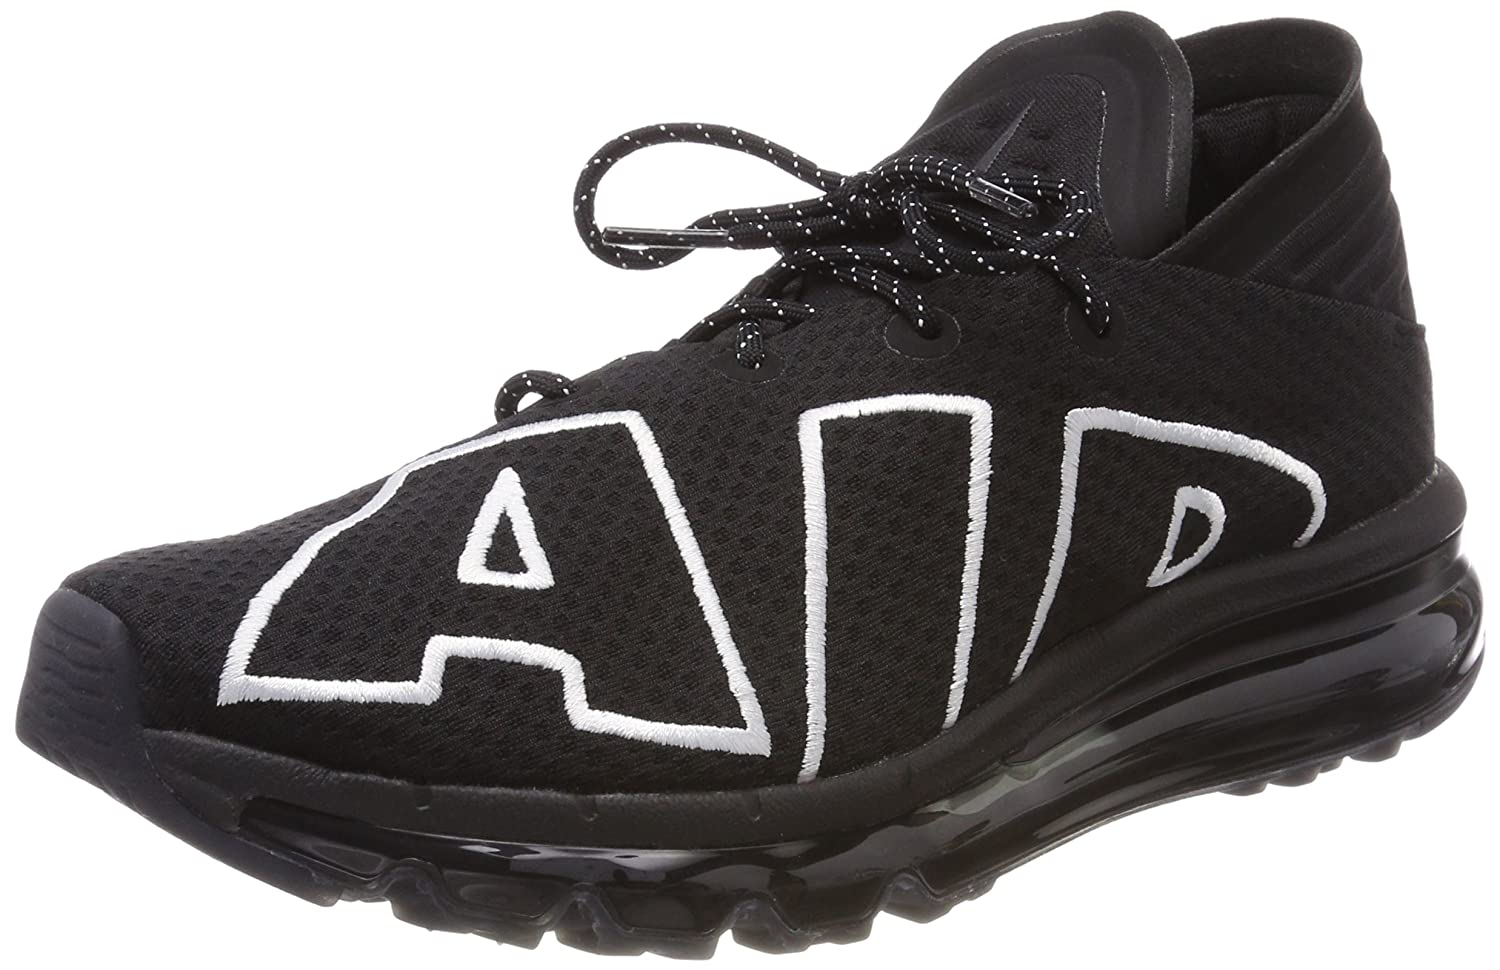 NIKE Men's Air Max Flair Running Shoes B00BG91ISC 8.5 D(M) US|black